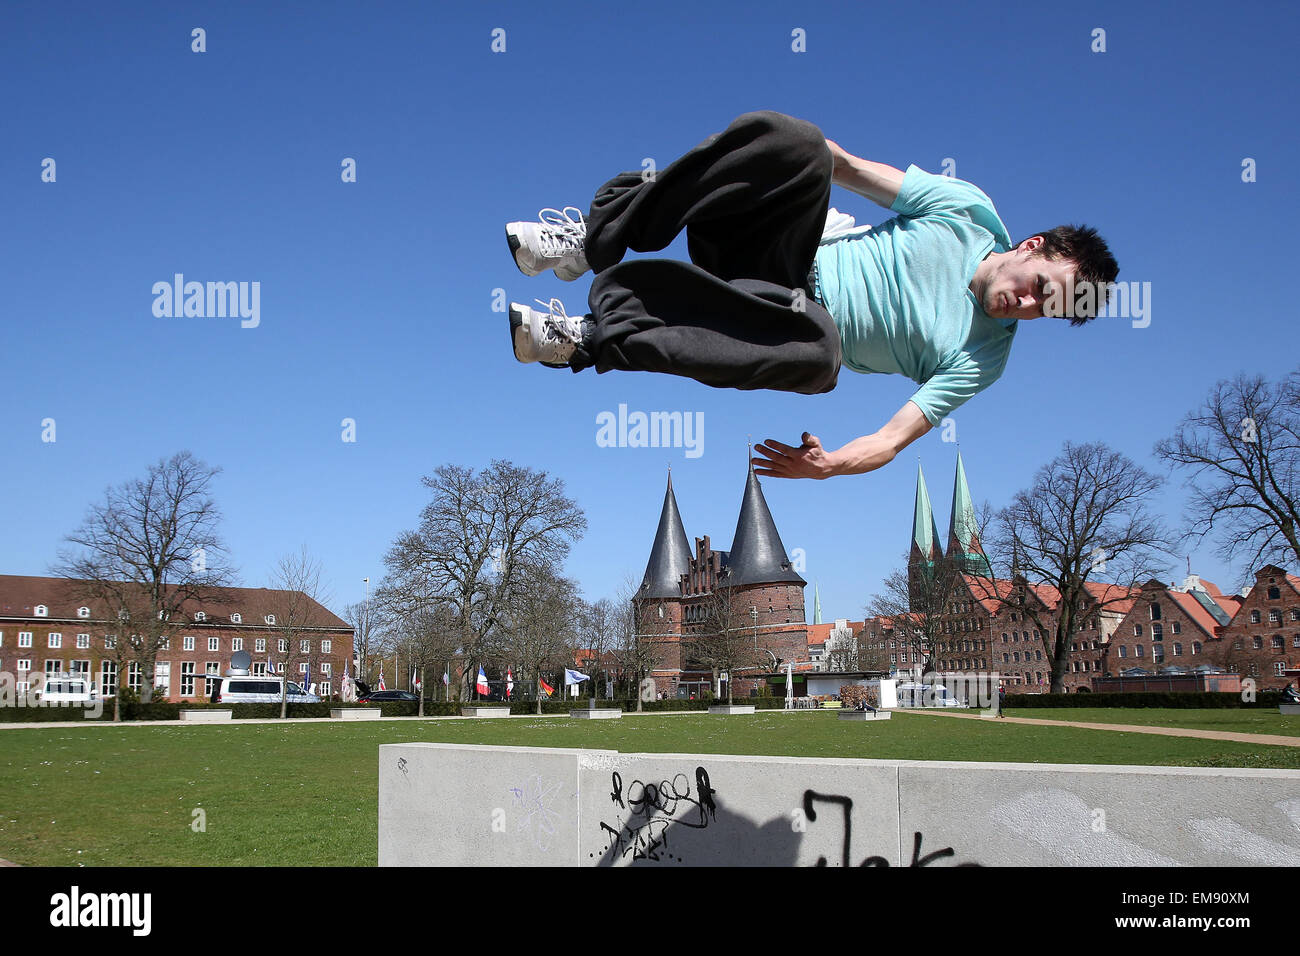 Luebeck, Germany. 15th Apr, 2015. Nils Marckwardt trains the sport 'parcours' and performs a 'free running - Stock Image